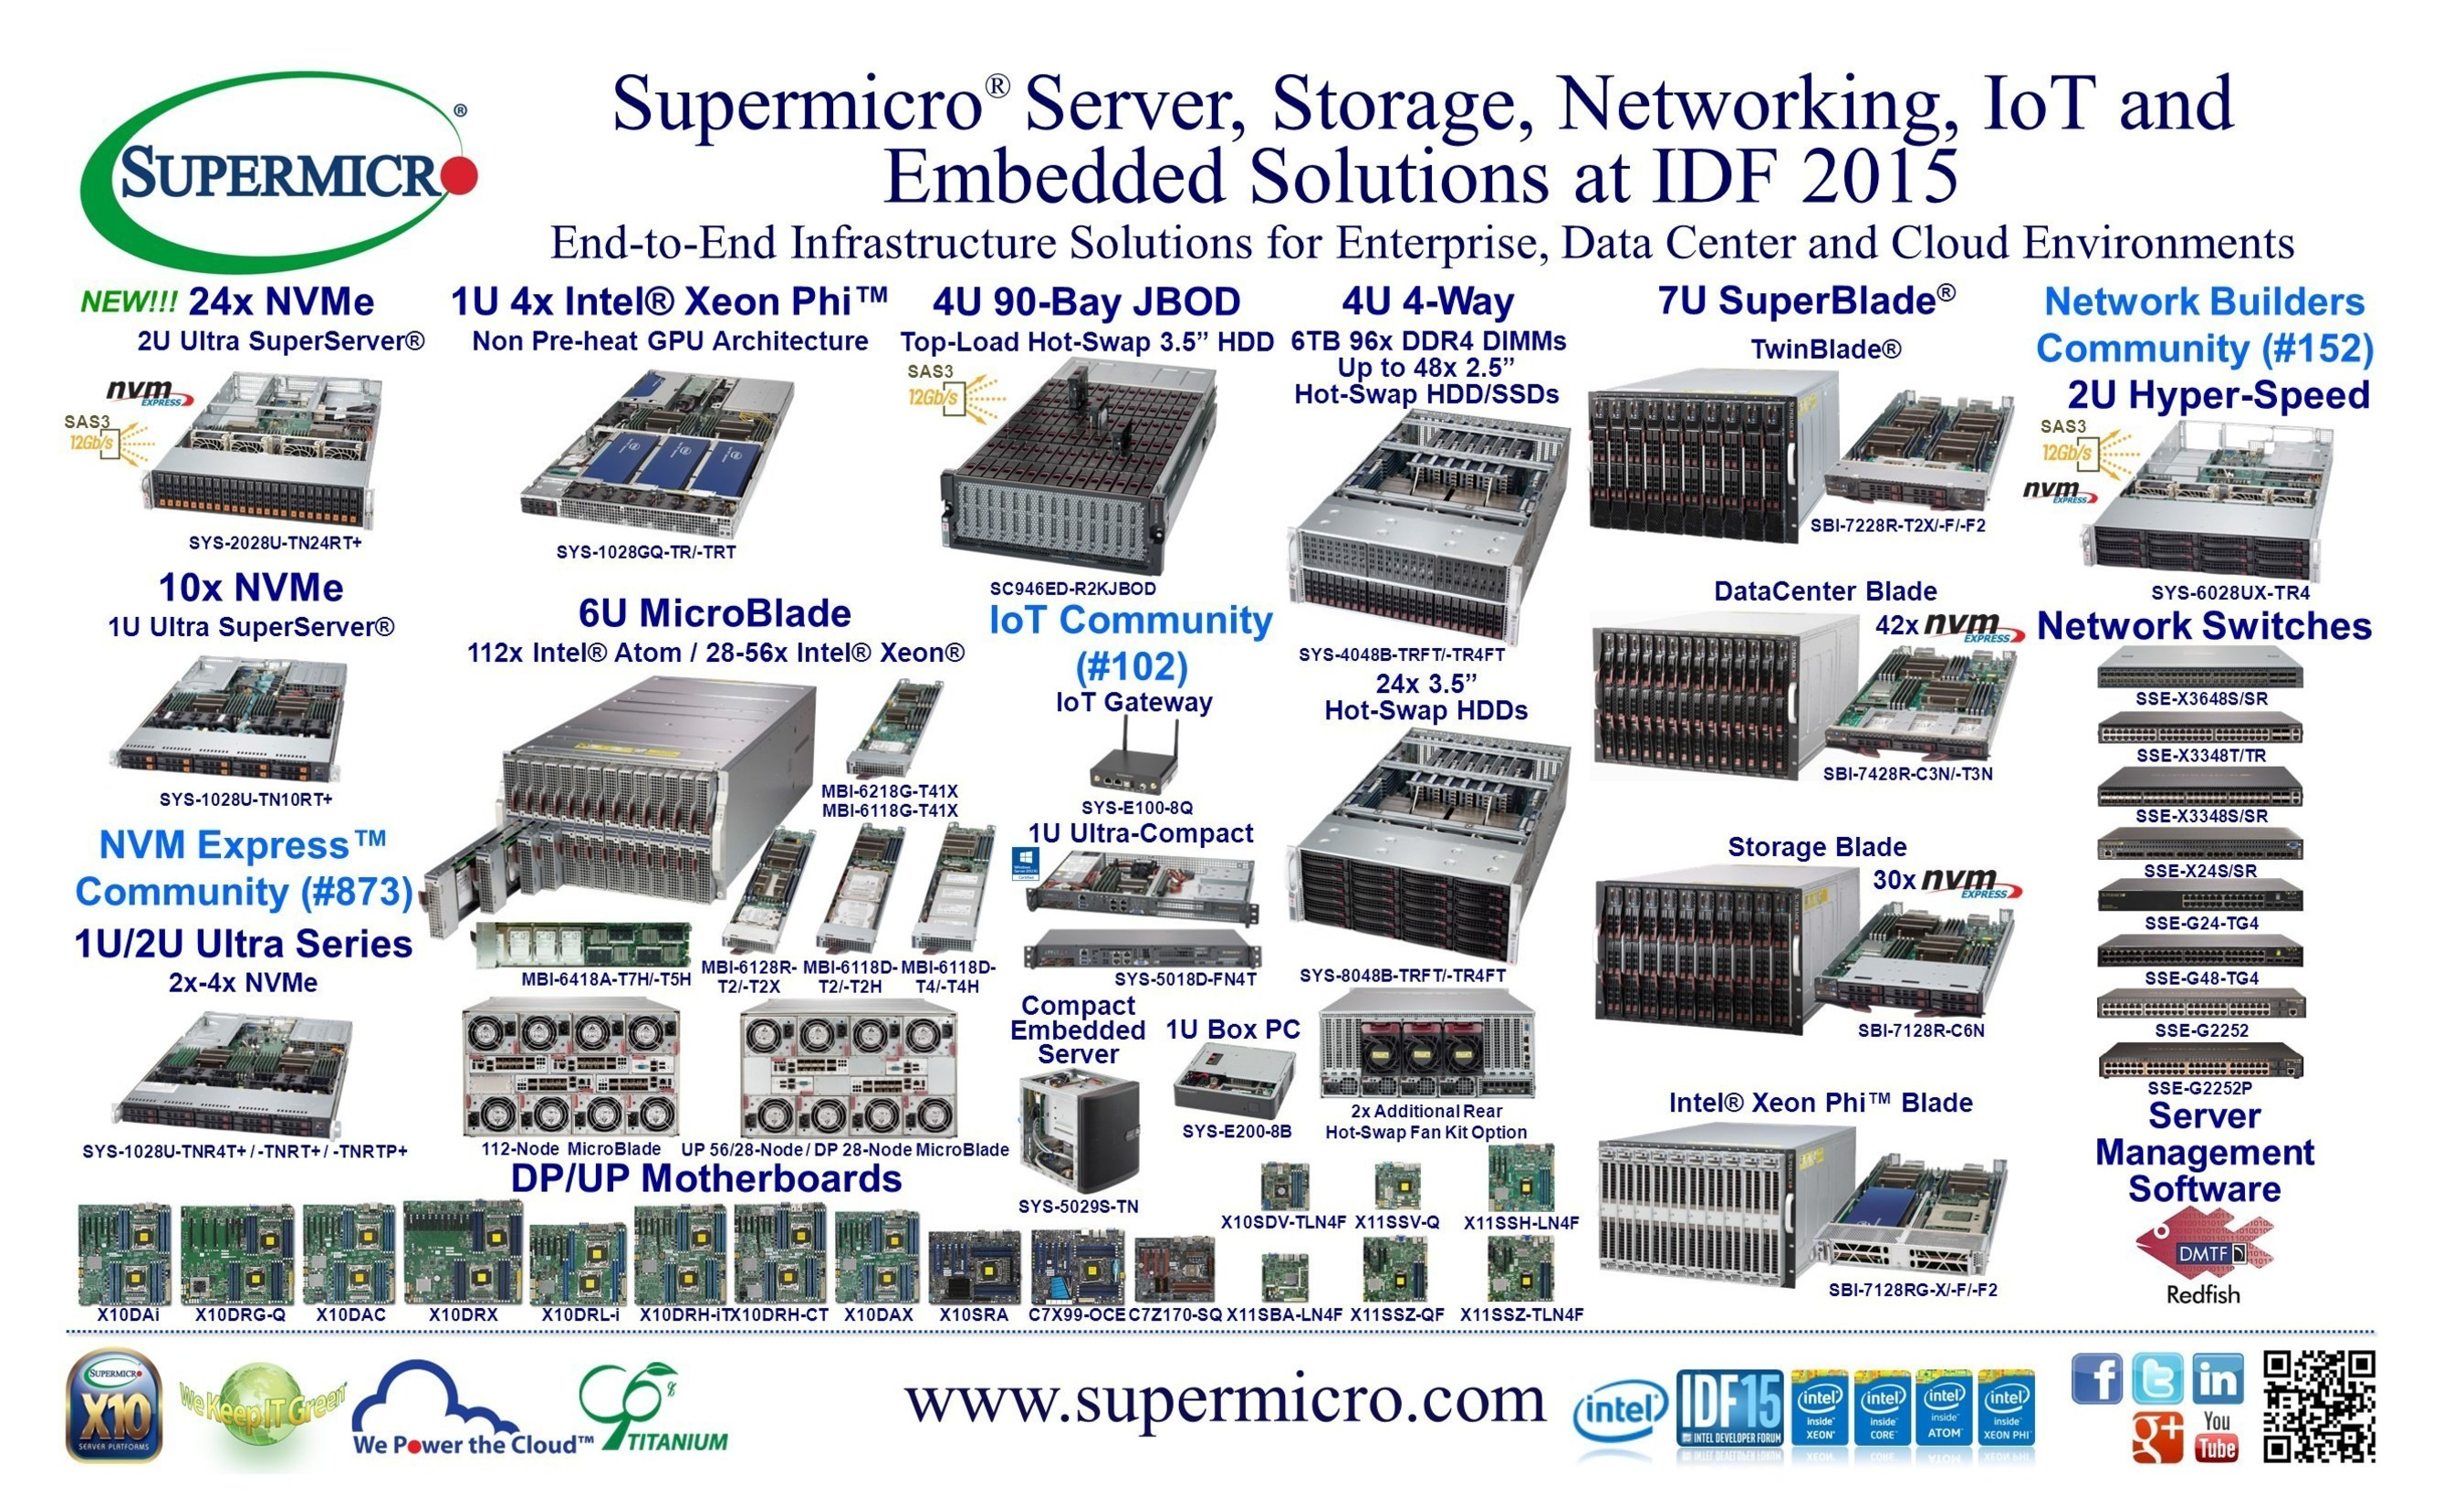 Supermicro(R) Server, Storage, Networking, Embedded & IoT Solutions at IDF 2015 SF